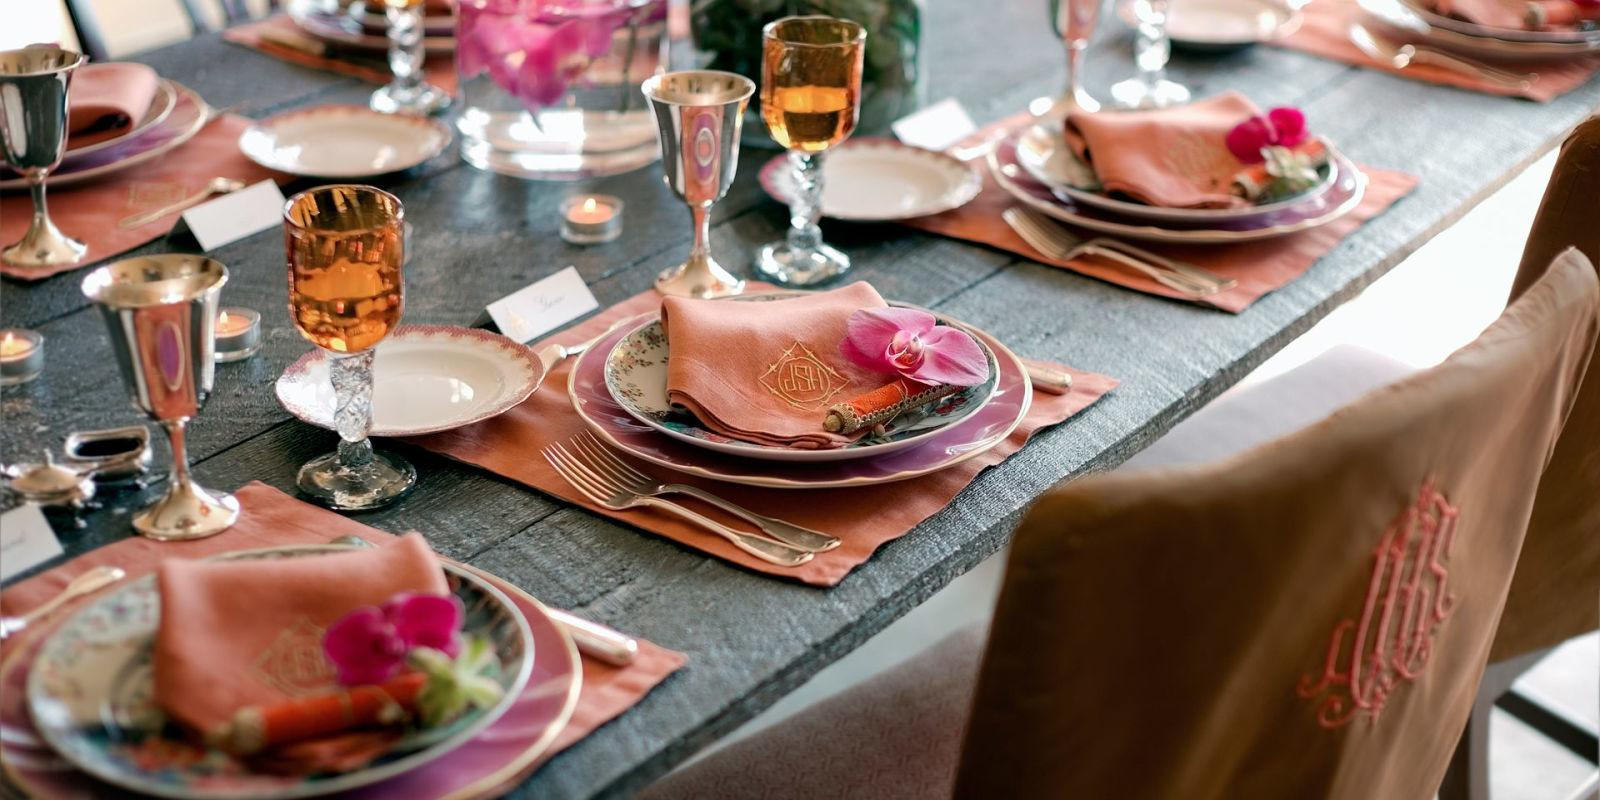 Fall Table Decorations Ideas Autumn Tablescape